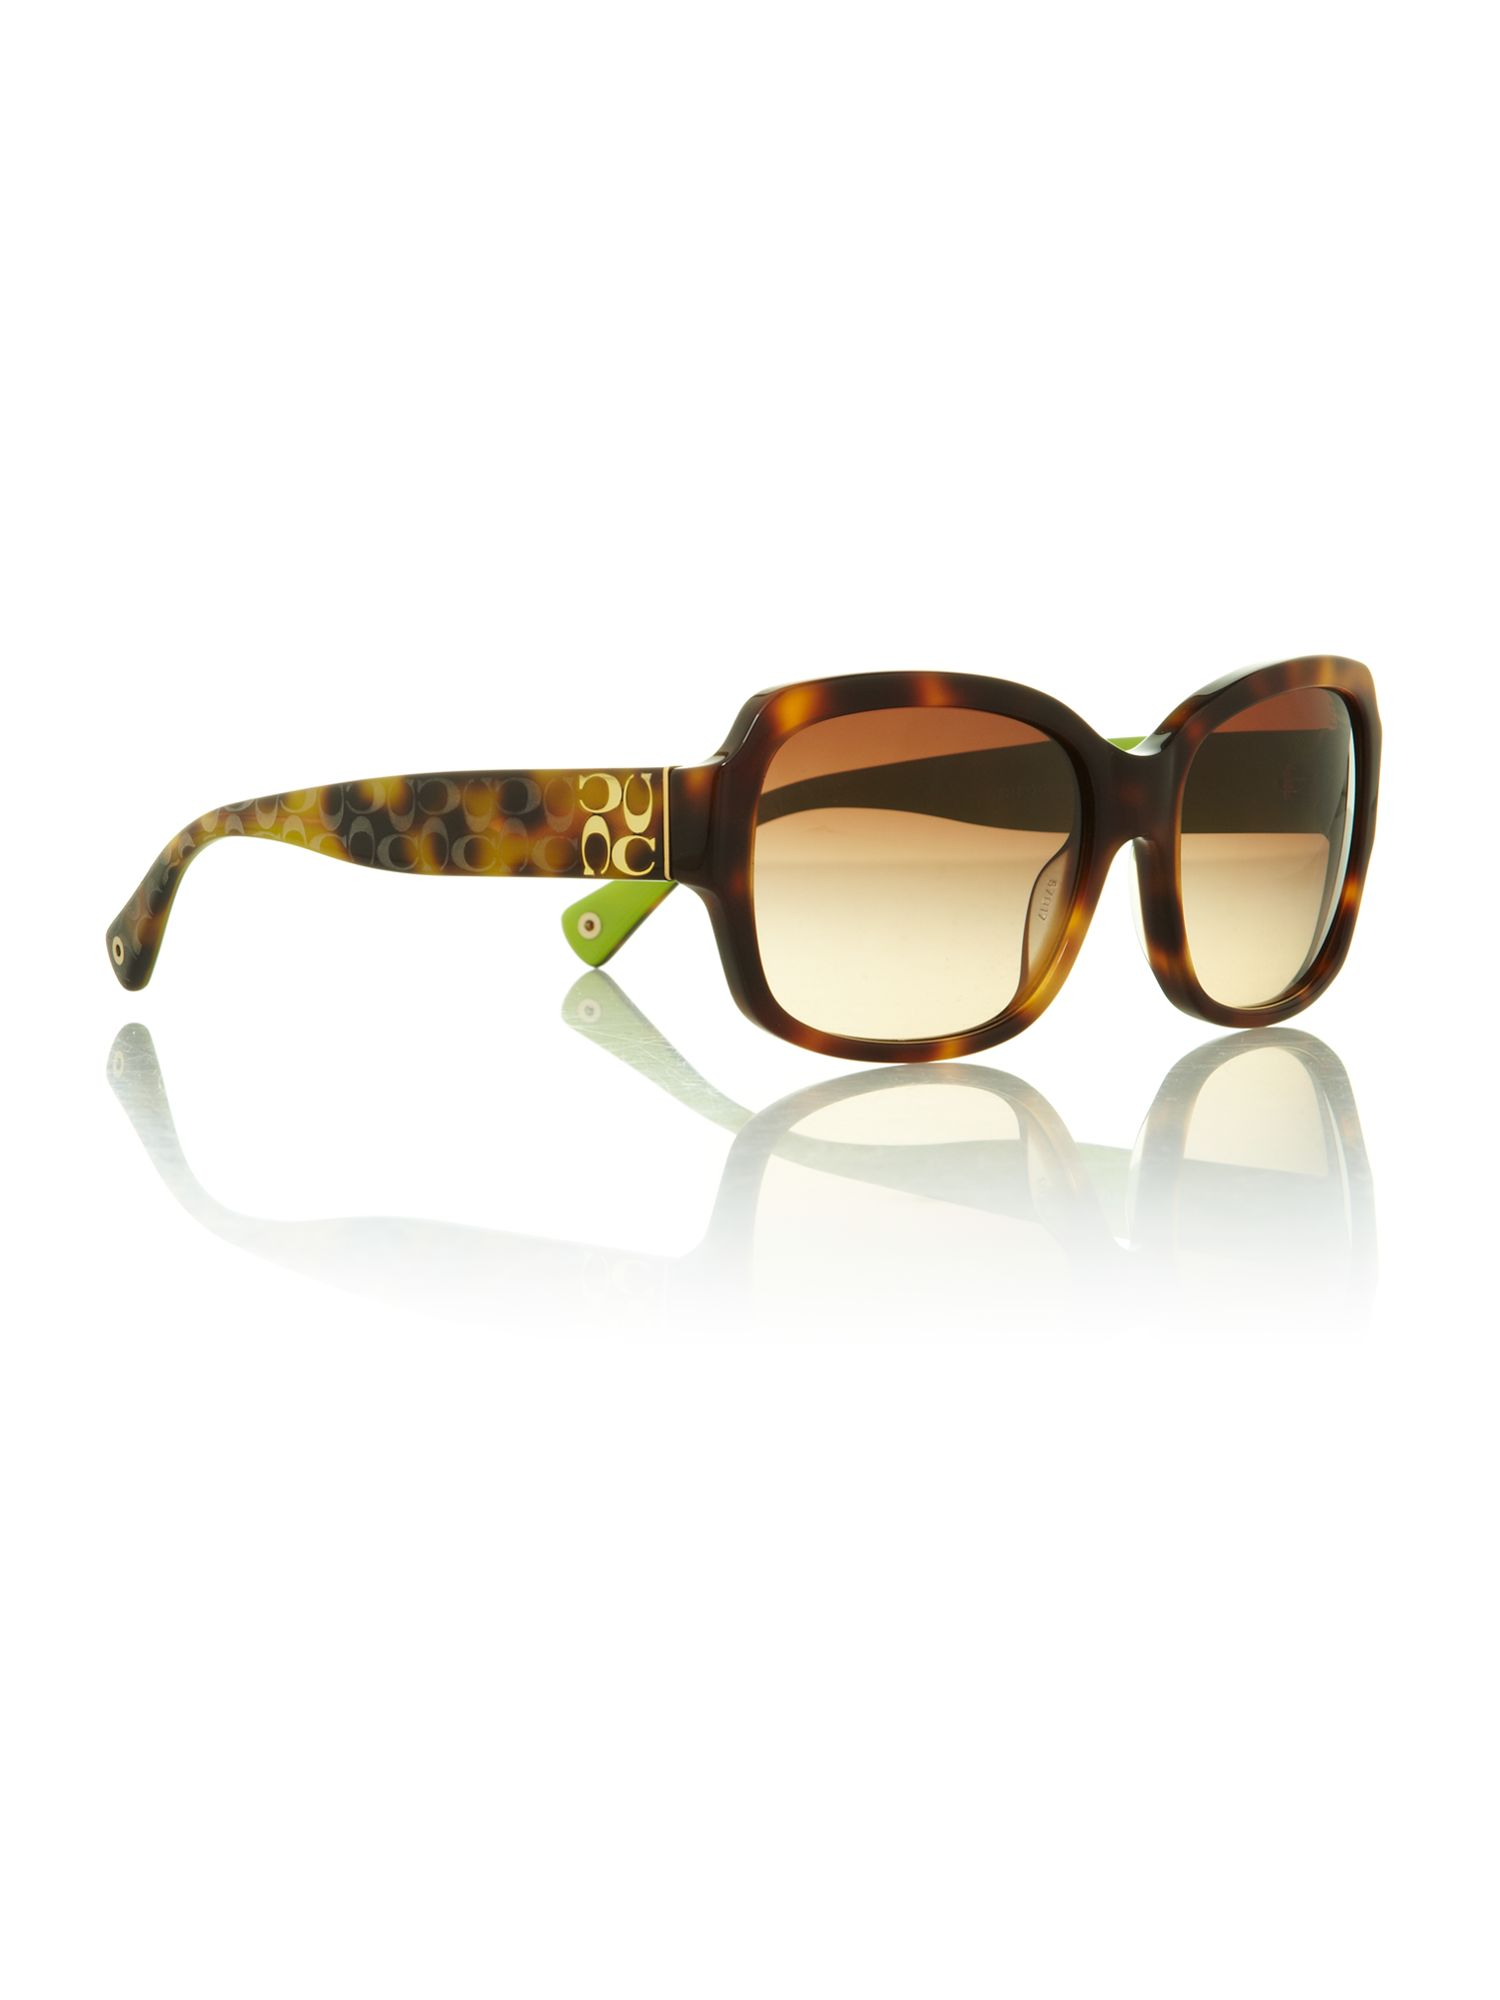 Ladies HC8050 tortoise emma sunglasses